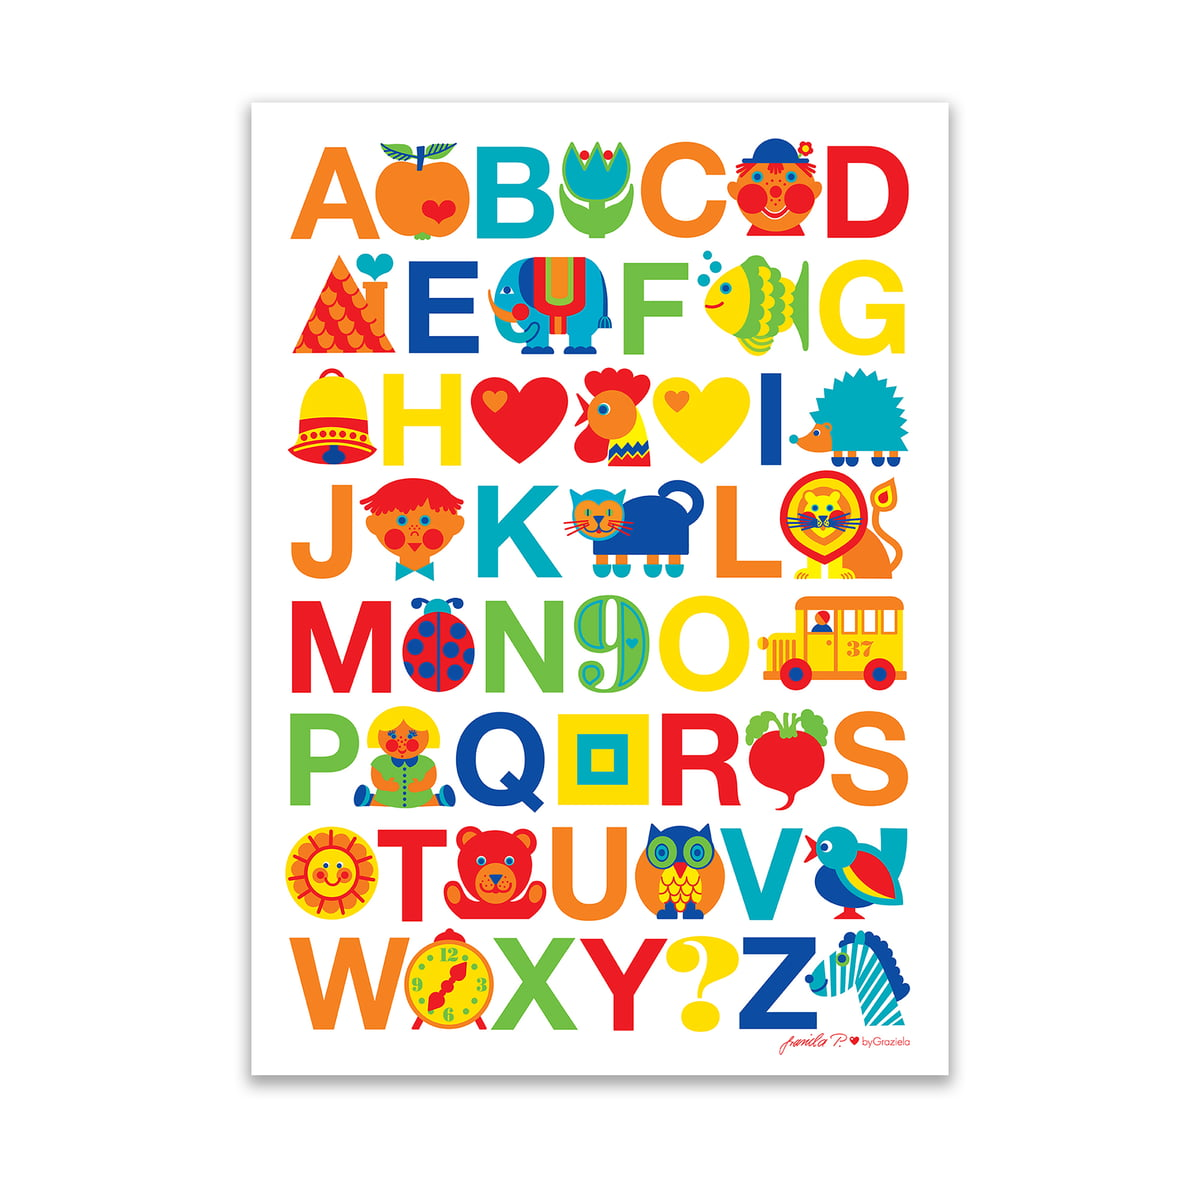 Poster Abc By Bygraziela In The Interior Design Shop